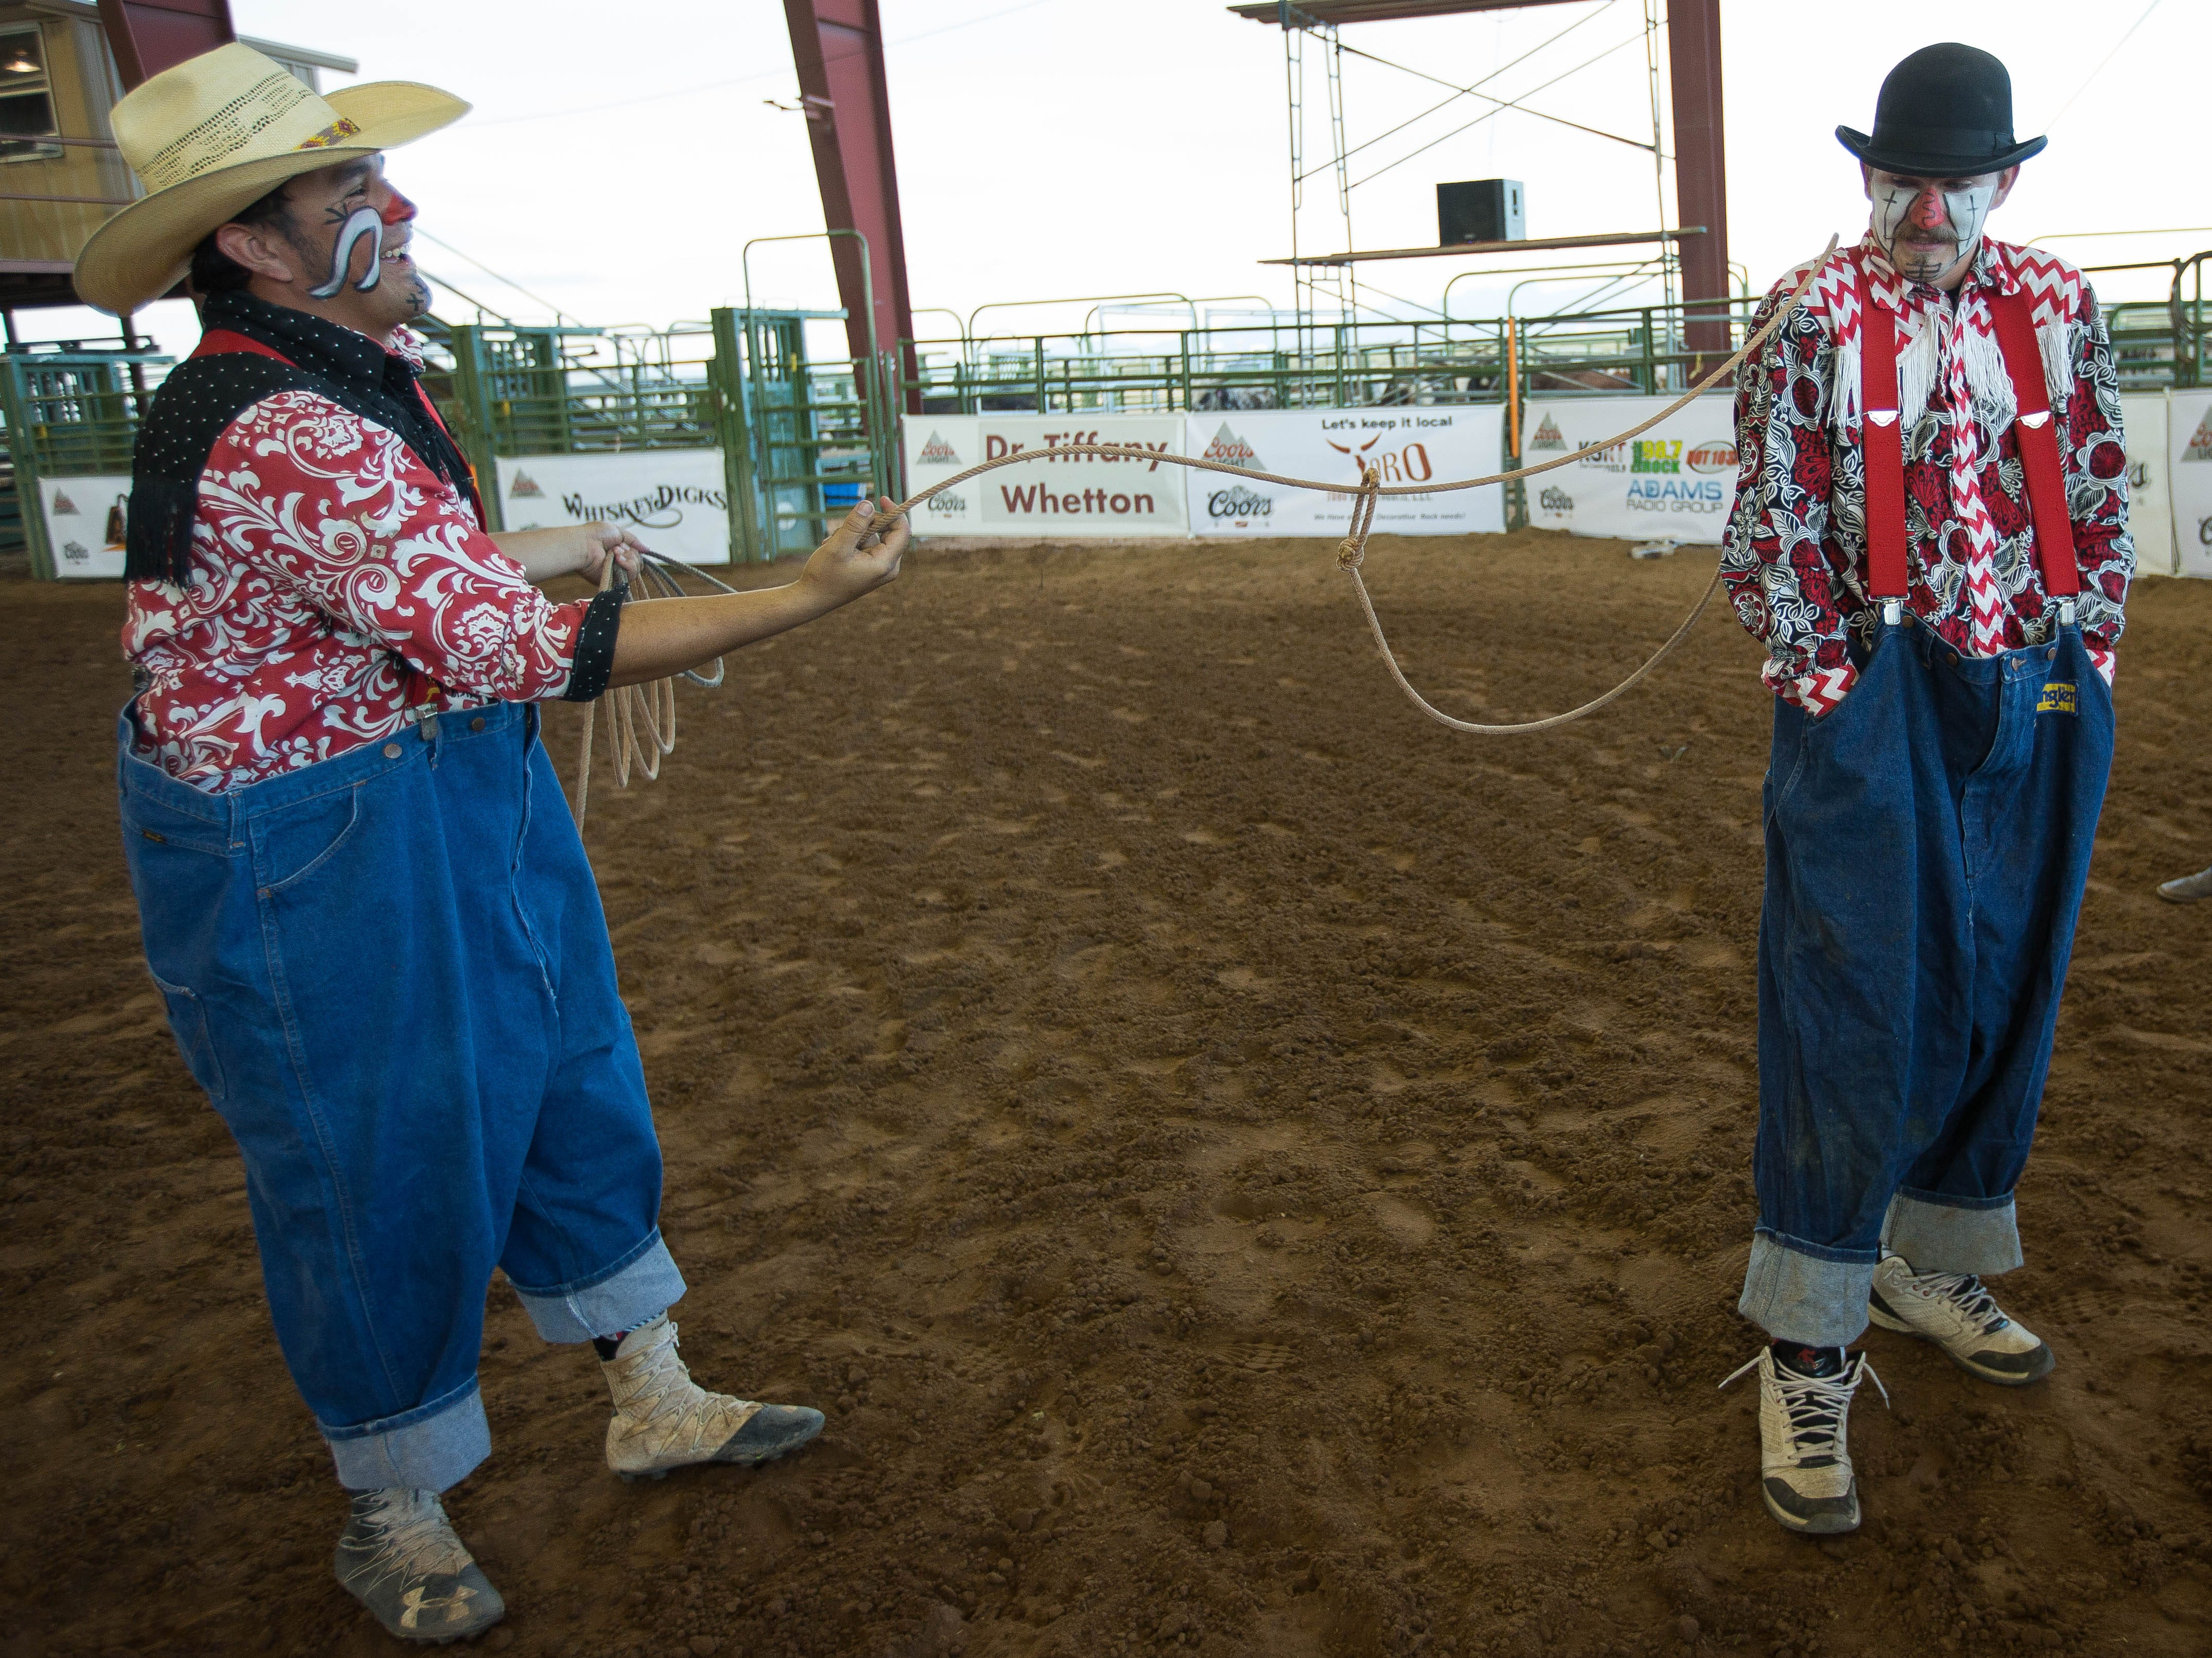 Josh Hernandez, left, ropes his friend and fellow rodeo clown Ethan Johnson, right, in the Kids and Fan Zone at the Southern New Mexico State Fair and Rodeo, Wednesday September 26, 2018.